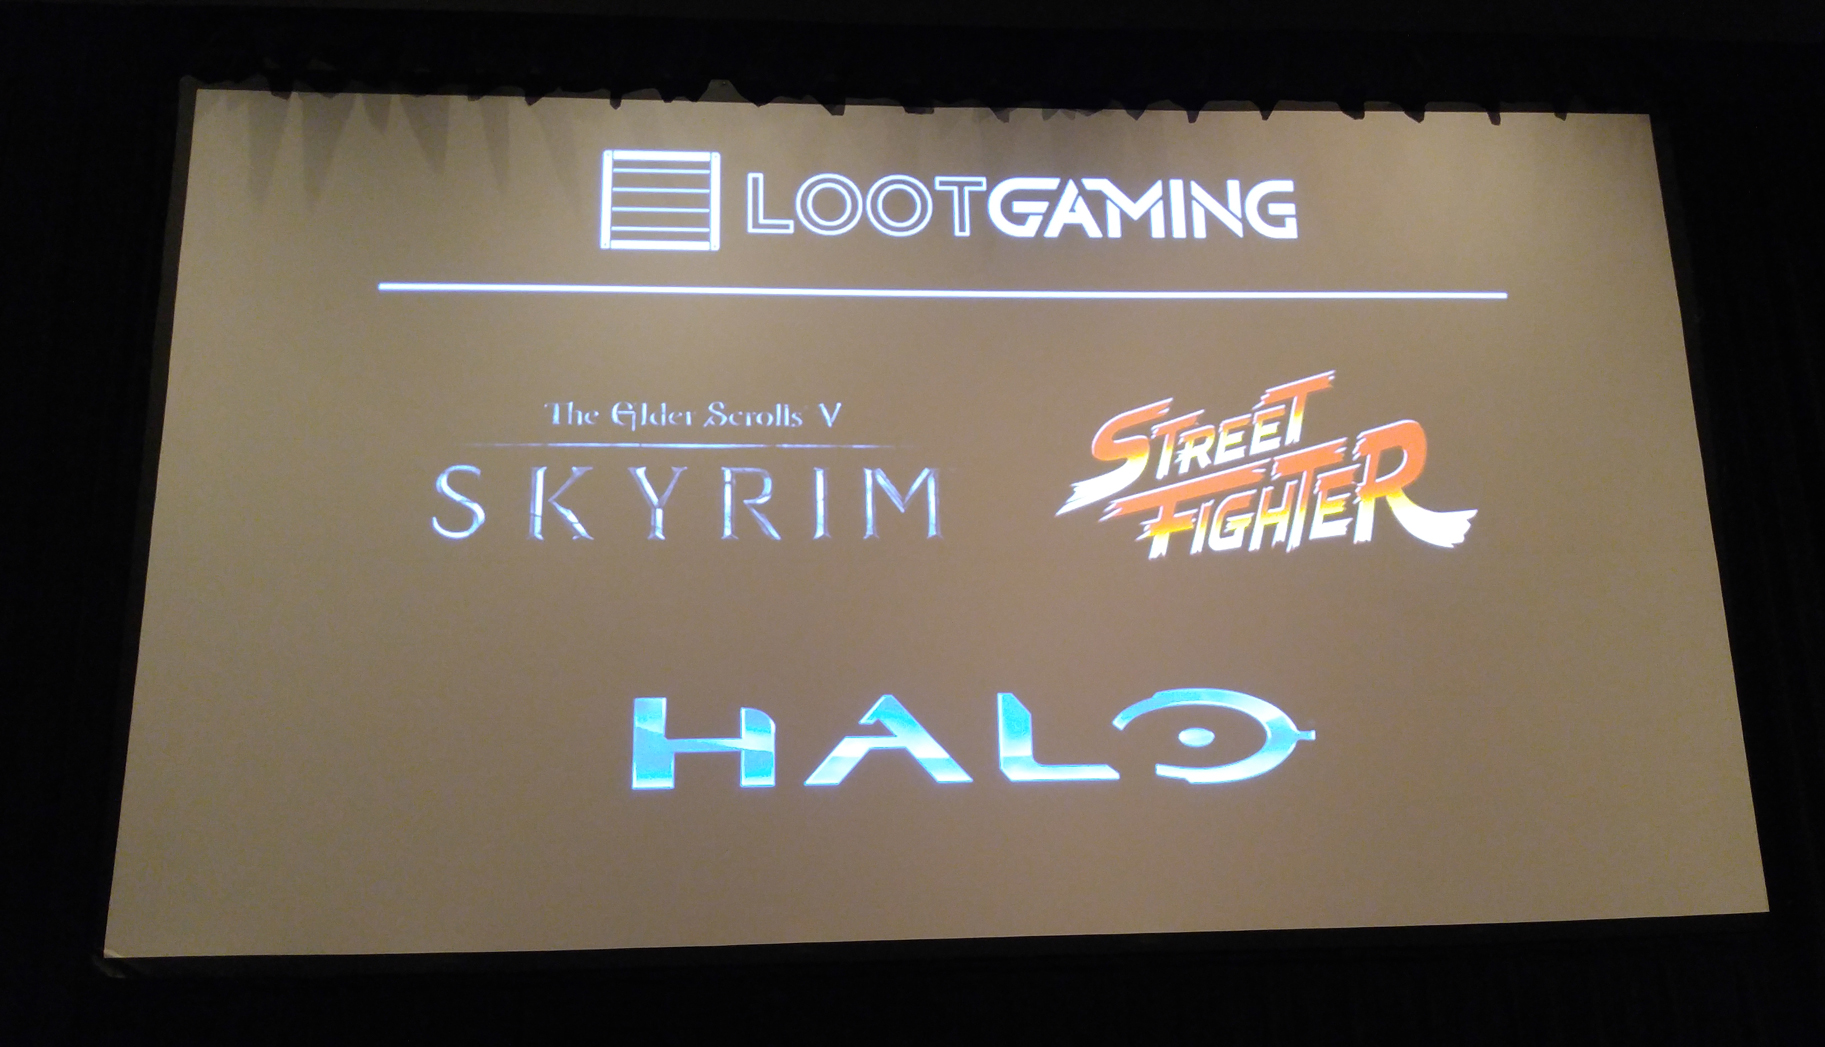 Loot Crate - Loot Gaming - PAX South 2016 - Skyrim, Street Fighter, Halo